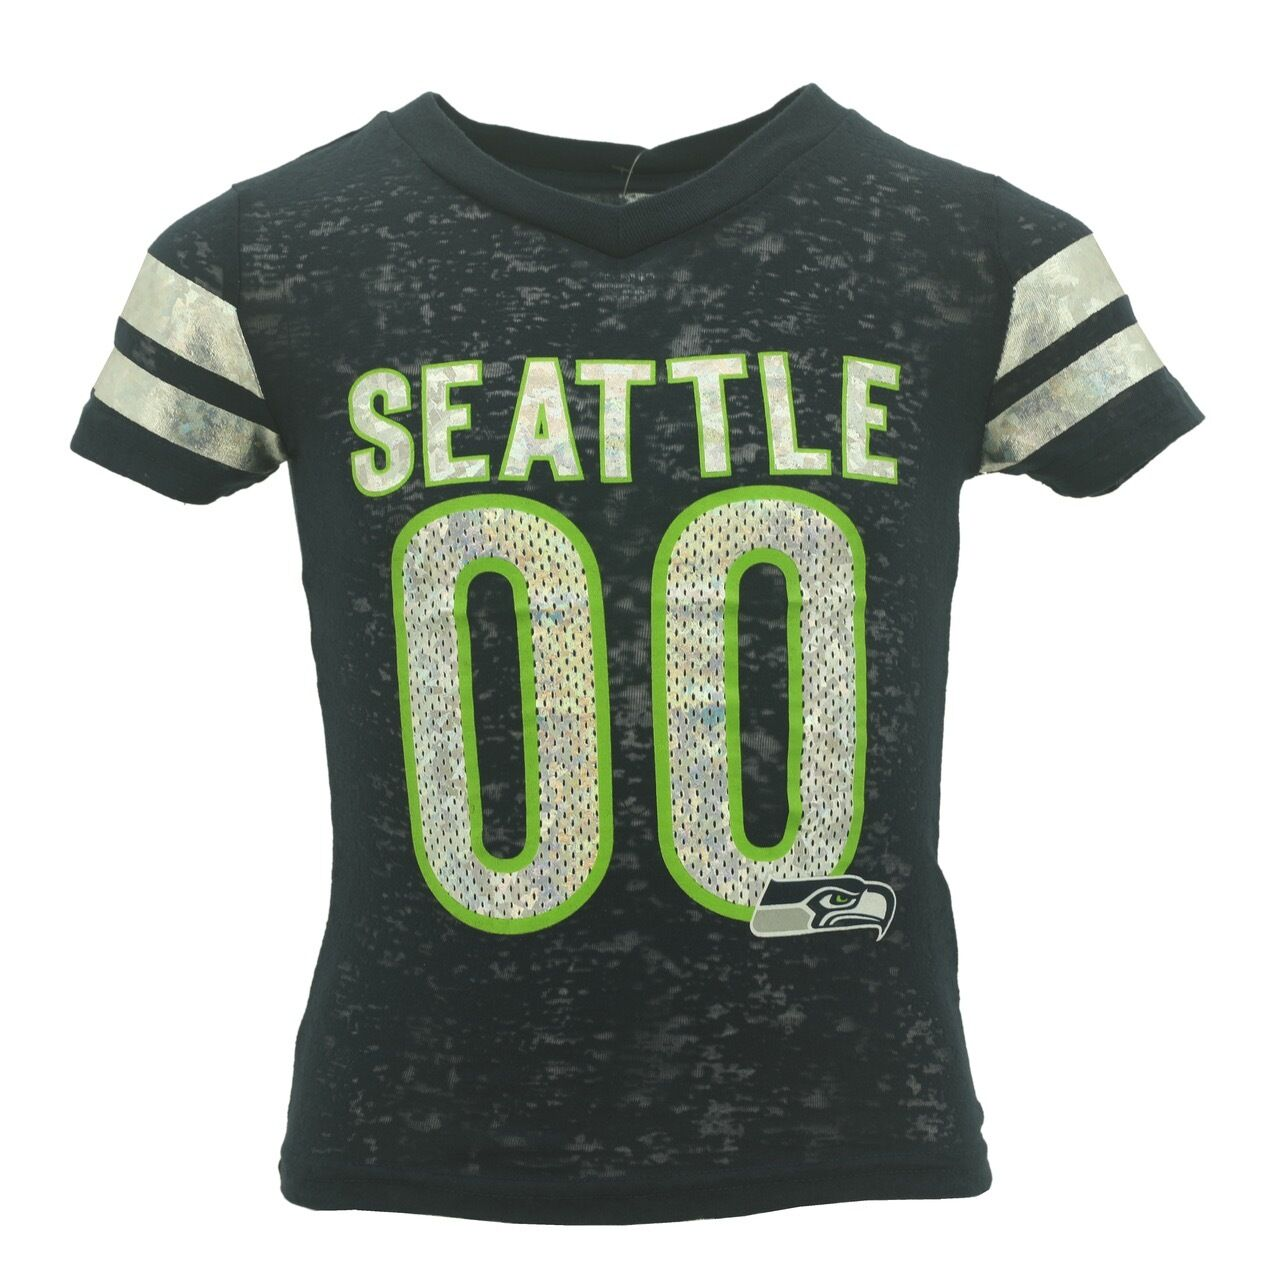 58abddcca Details about Seattle Seahawks Official NFL Kids   Youth Girls Size Sheer  Shirt New Tags